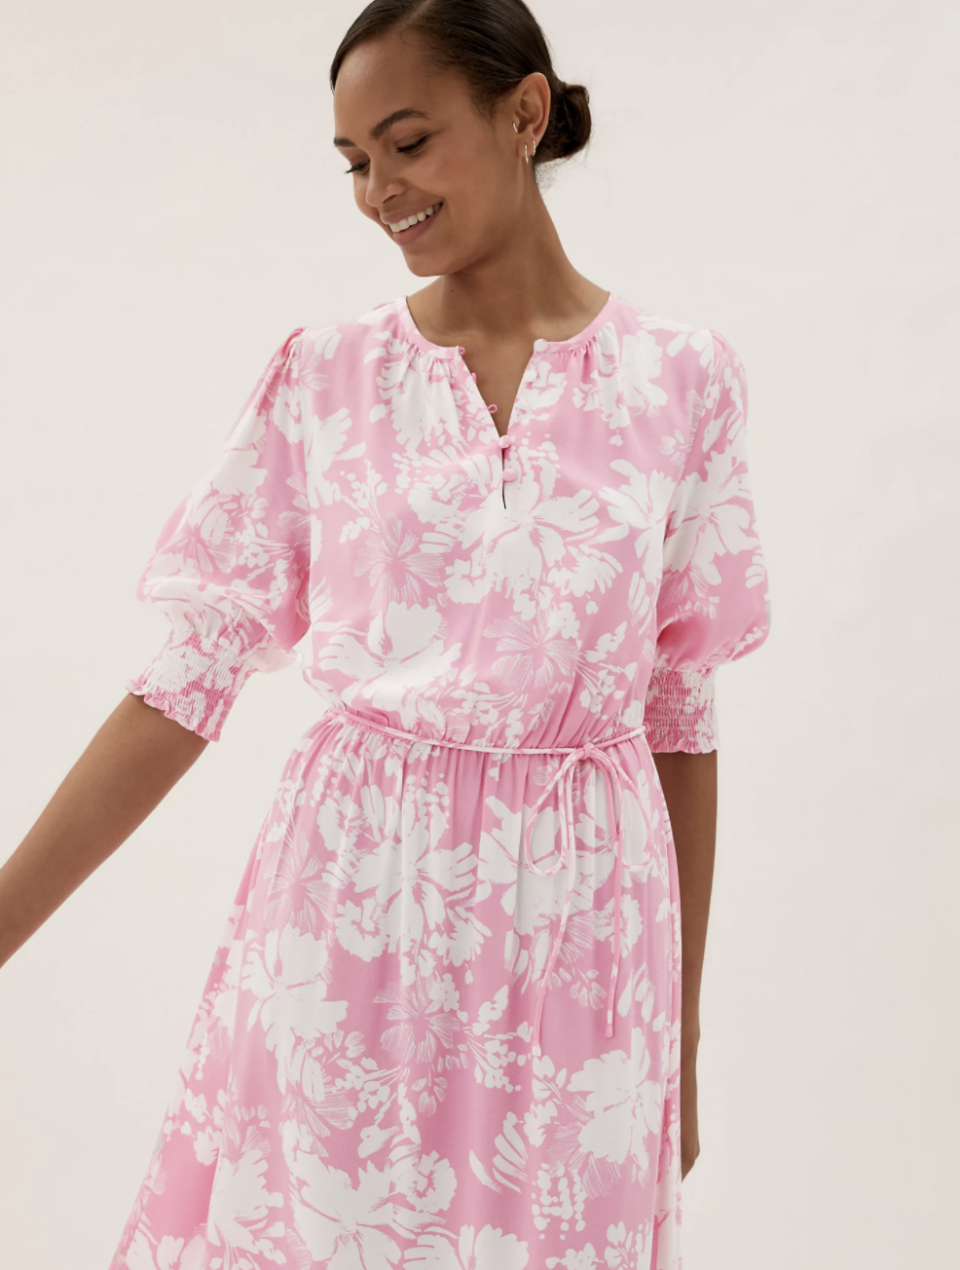 M&S' new floral midaxi dress comes in regular and long lengths to suit all shoppers' needs.  (Marks and Spencer)